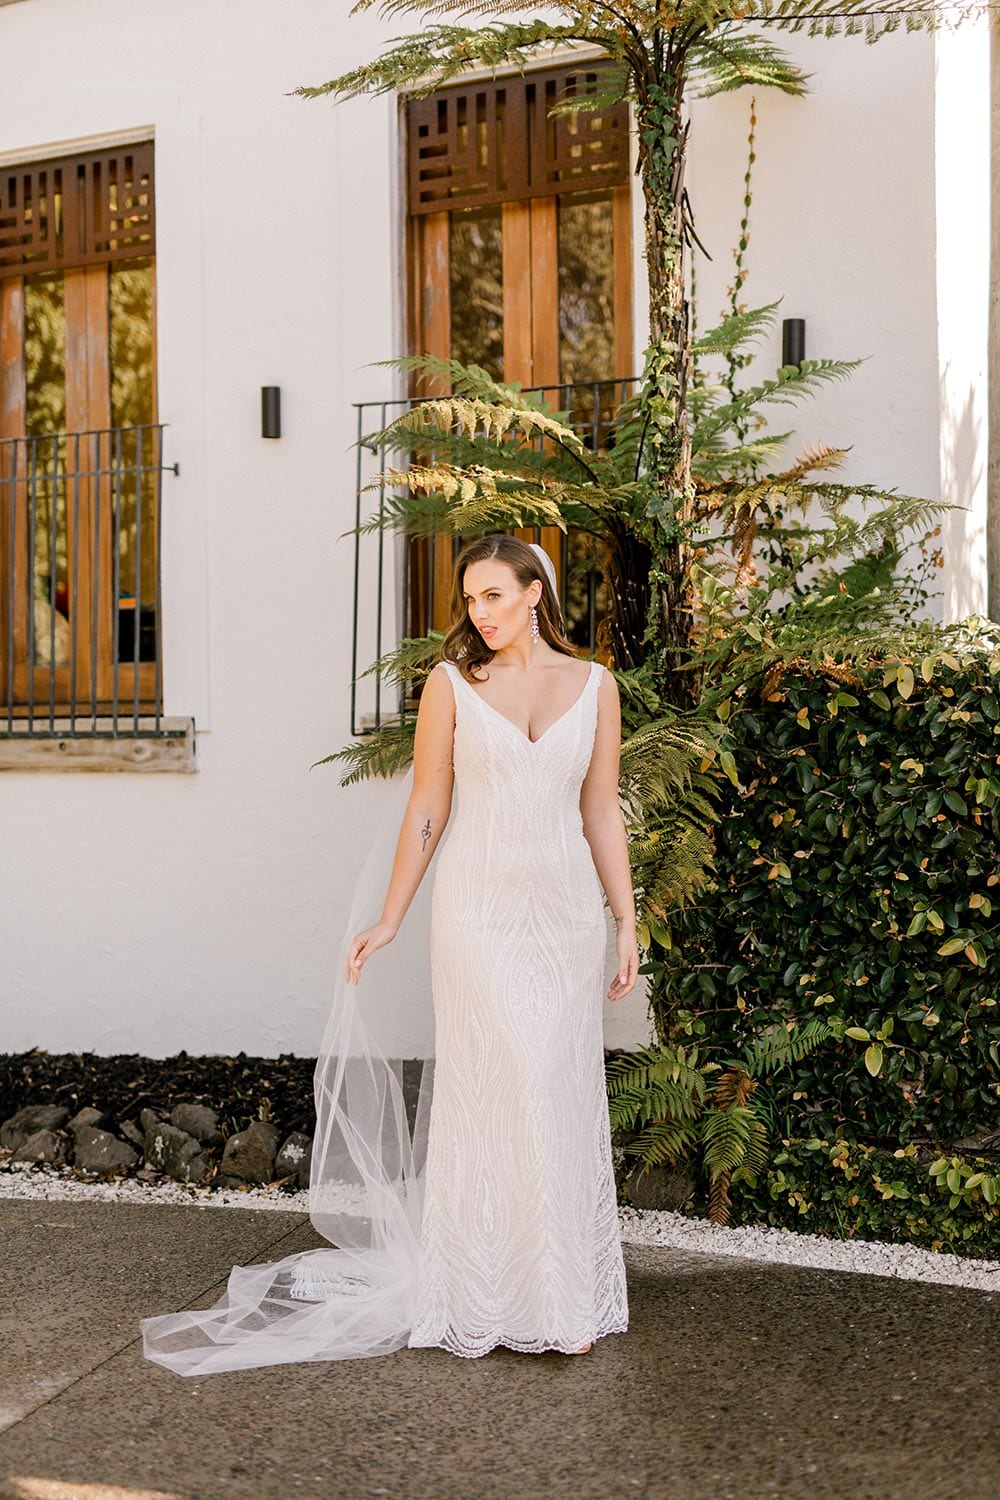 Kiera Wedding Dress from Vinka Design. Beautifully beaded lace wedding dress. Deep V-neckline both front and back is complemented with delicate sheer lace shoulder detail & structured bodice. Portrait showing full dress. Photographed at Tui Hills.